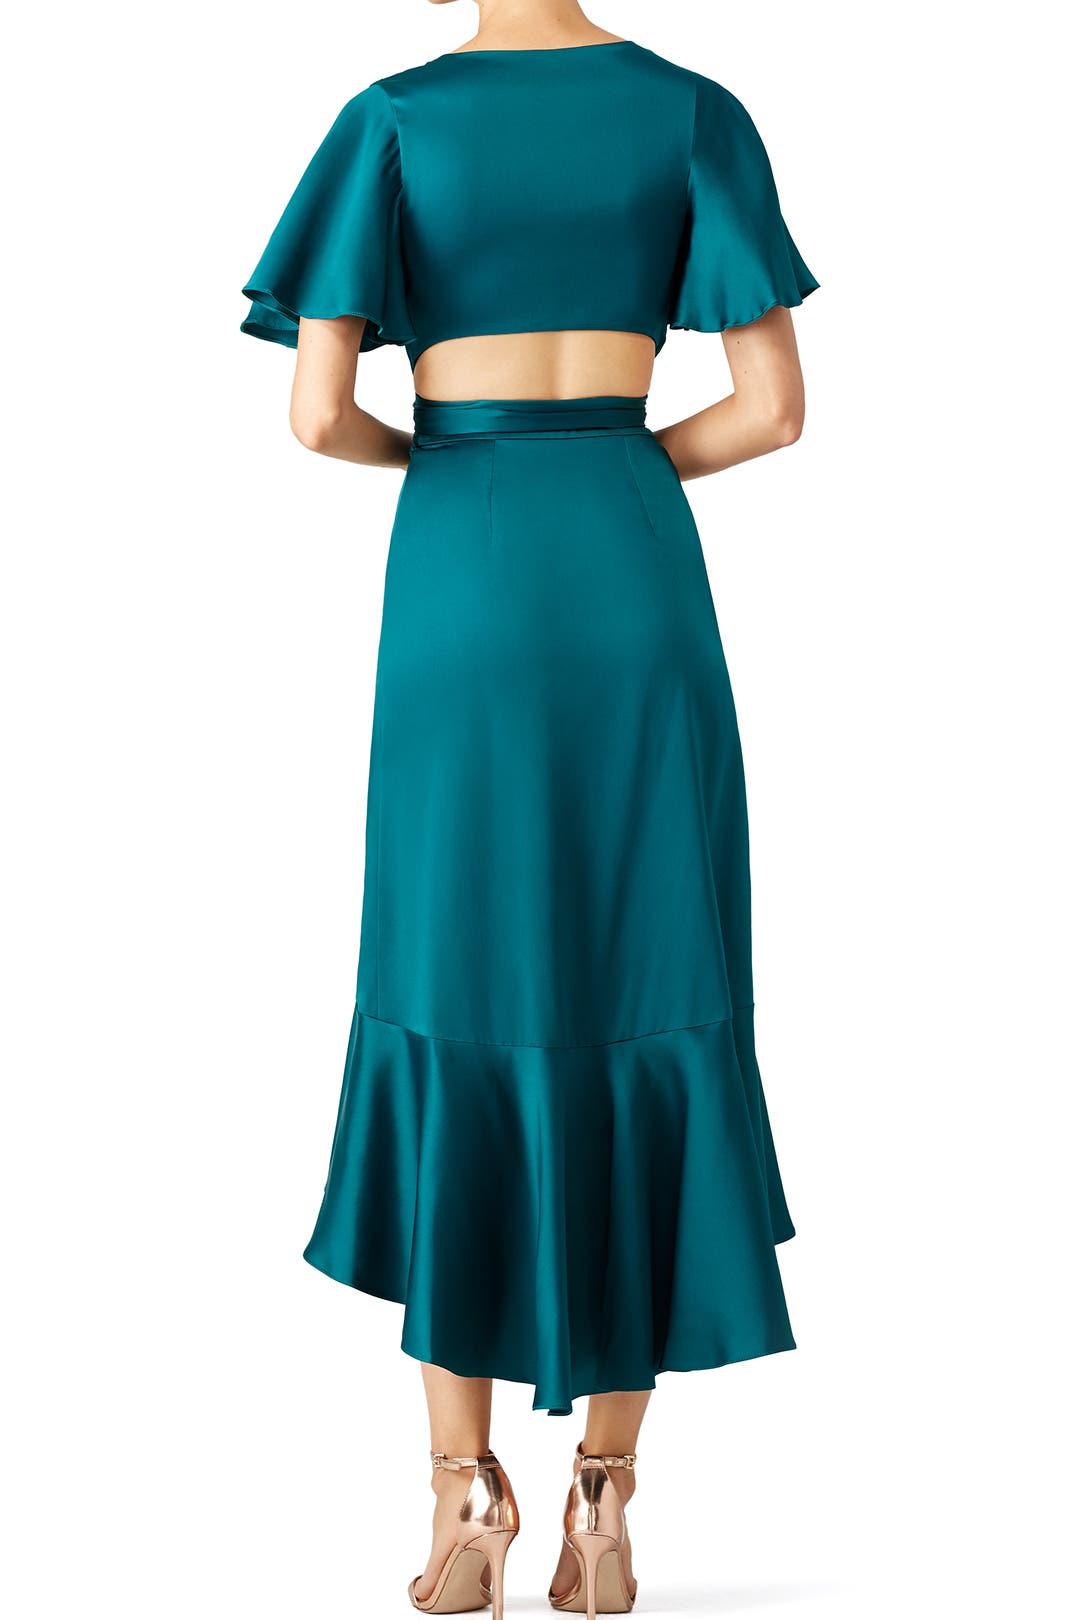 0544d1fcc75f Emerald Parrot Wrap Dress by Temperley London for $240 | Rent the Runway